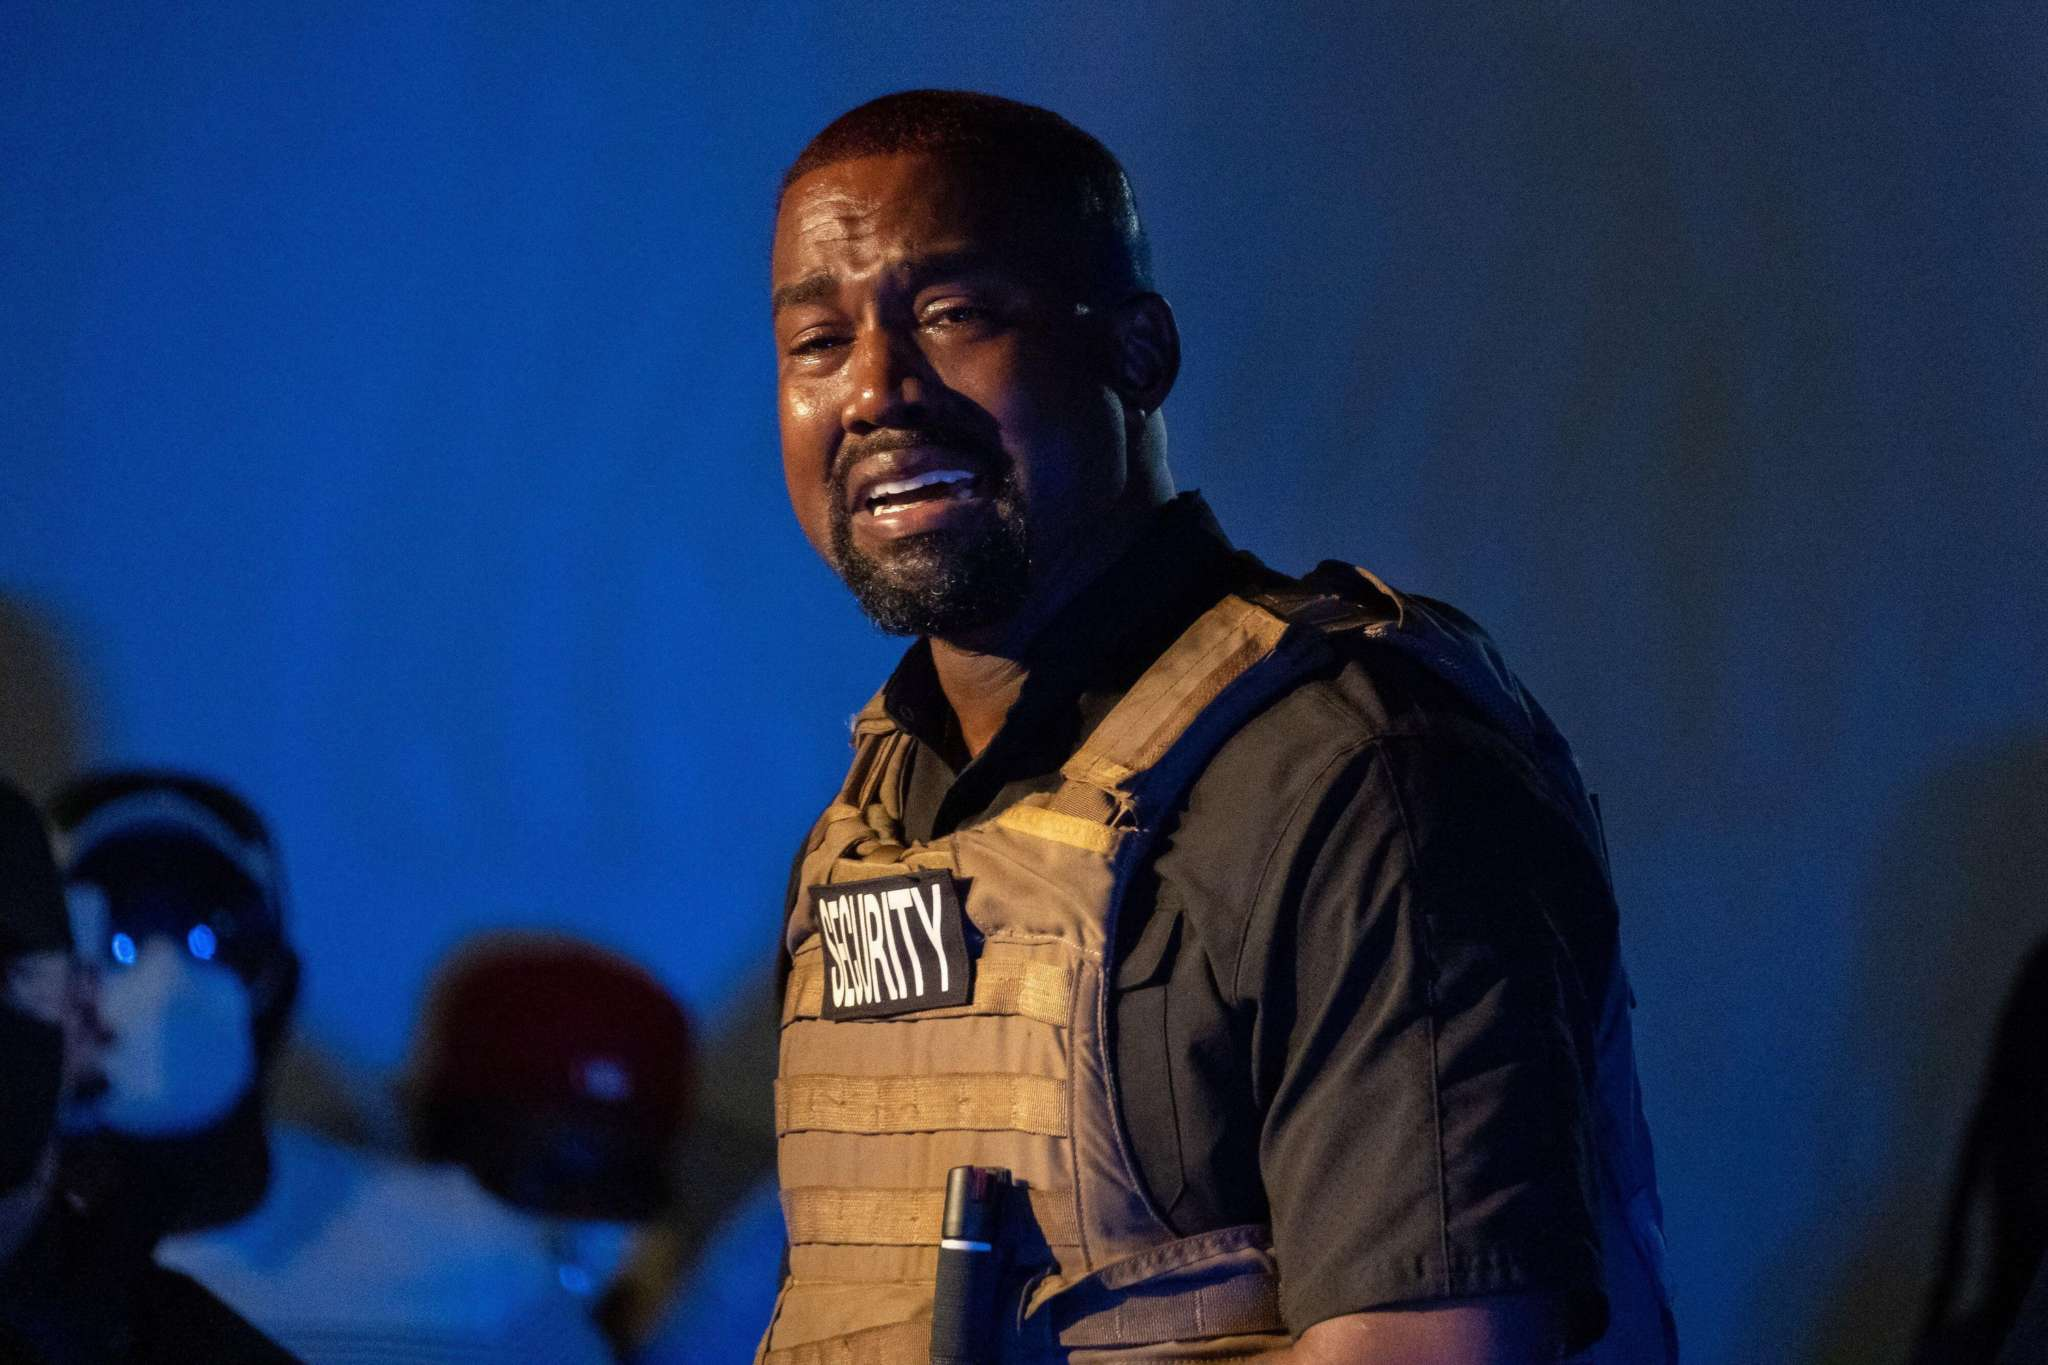 Kanye West Has A Twitter Meltdown! He Says Kim Kardashian Tried To Lock Him Up And More